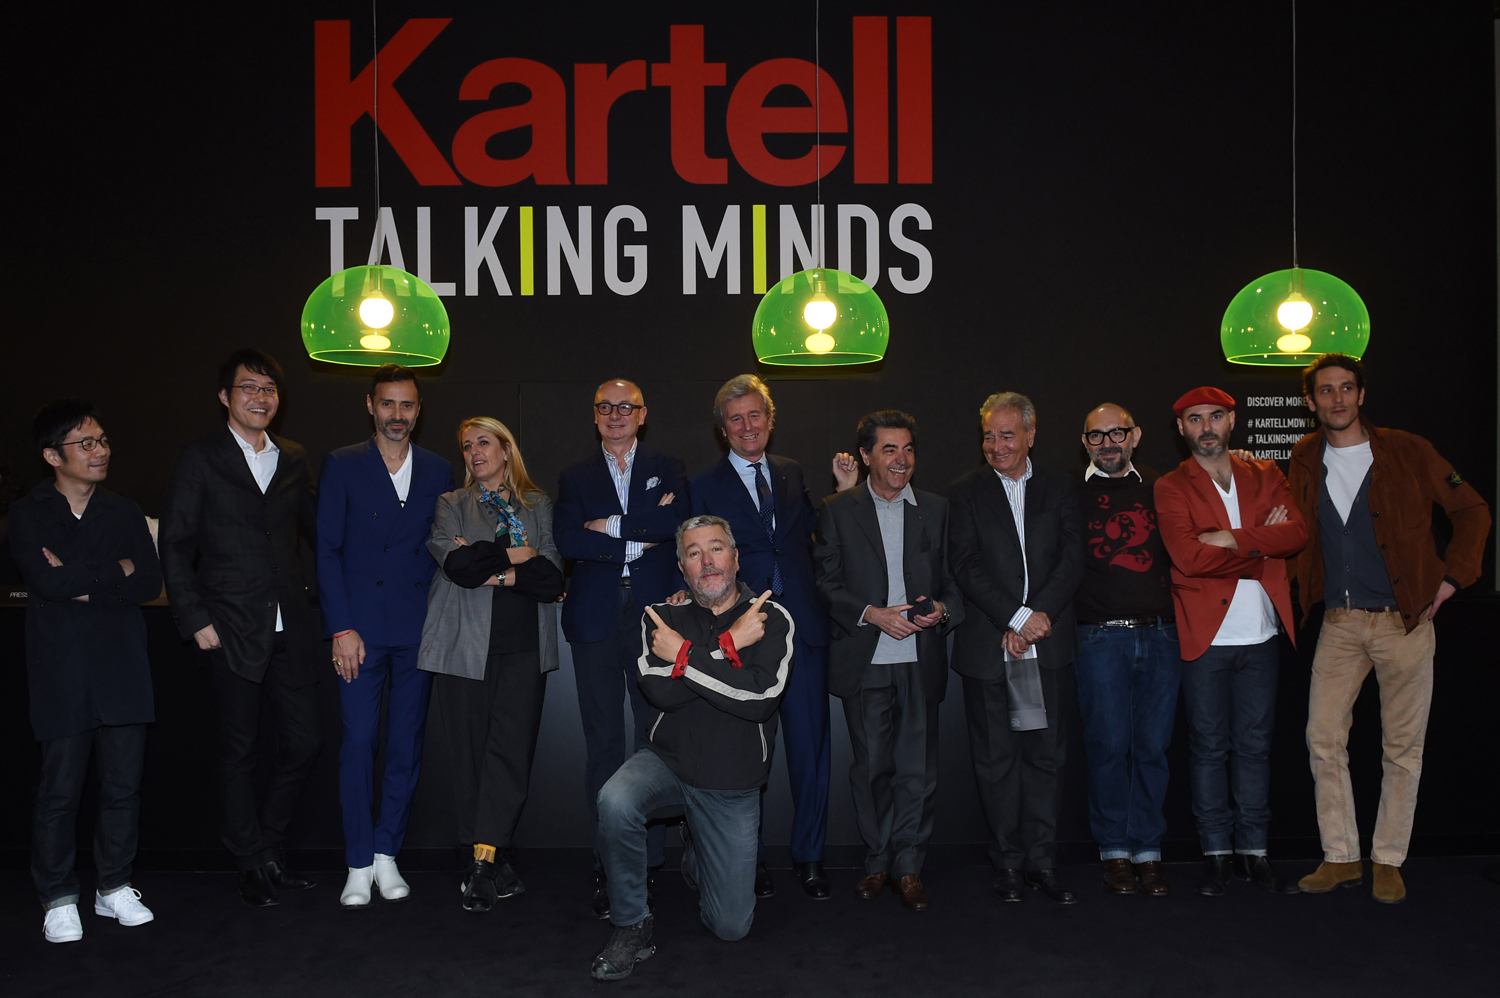 Talking Minds by Kartell